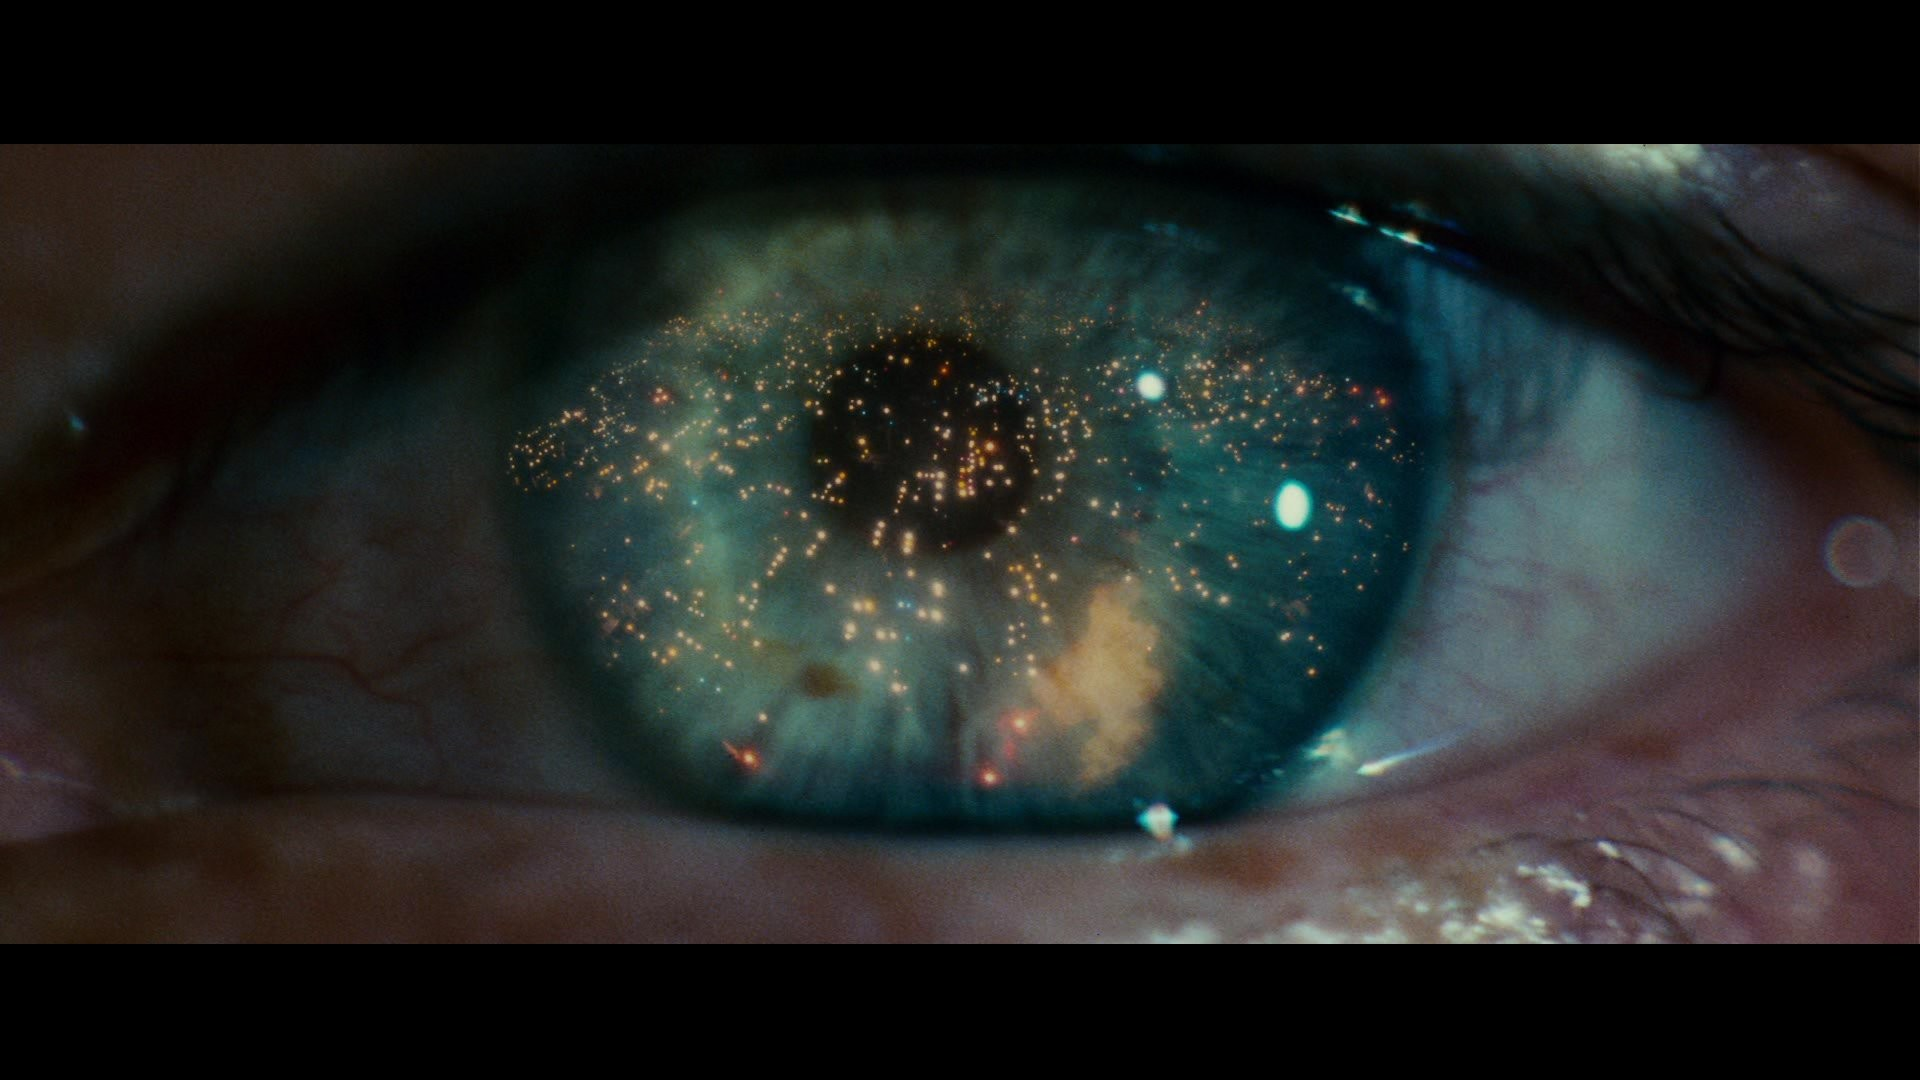 1920x1080 Close-up eyes 2001: A Space Odyssey wallpaper |  | 286532 |  WallpaperUP